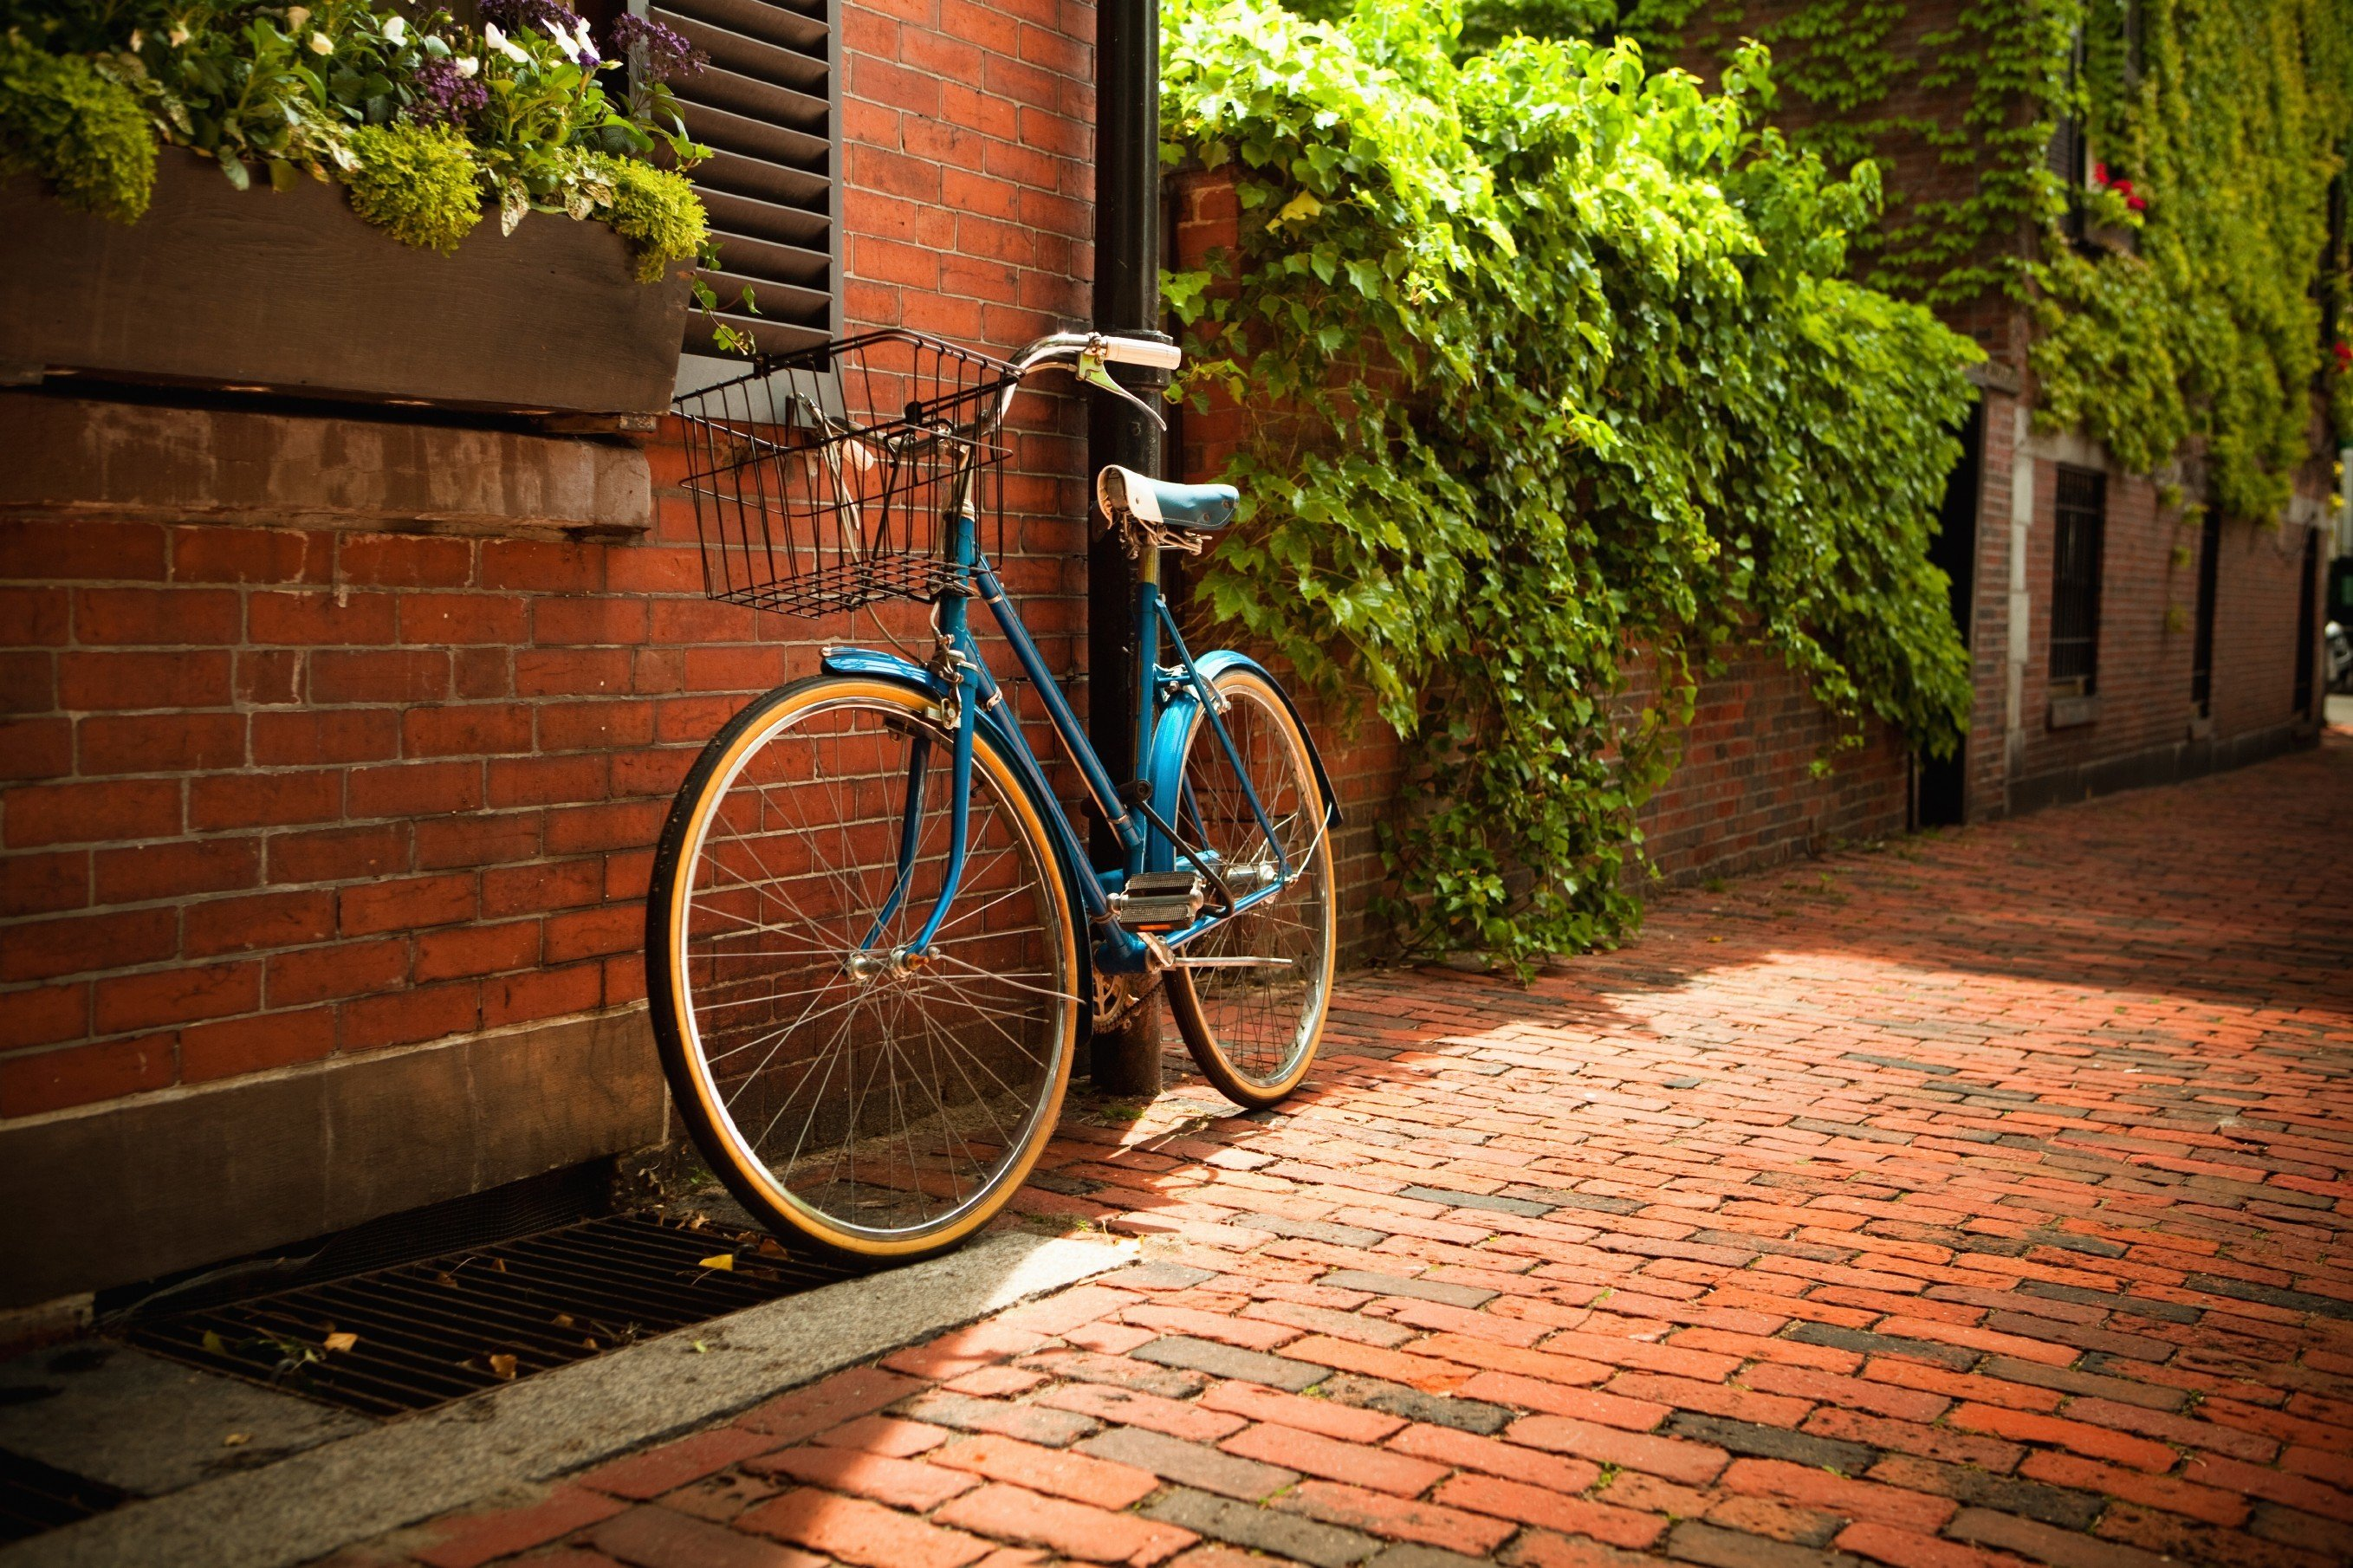 Budget outdoor bicycle ground tree brick building sidewalk parked vehicle lane road way cycling street leaning sports equipment wood stone walkway curb